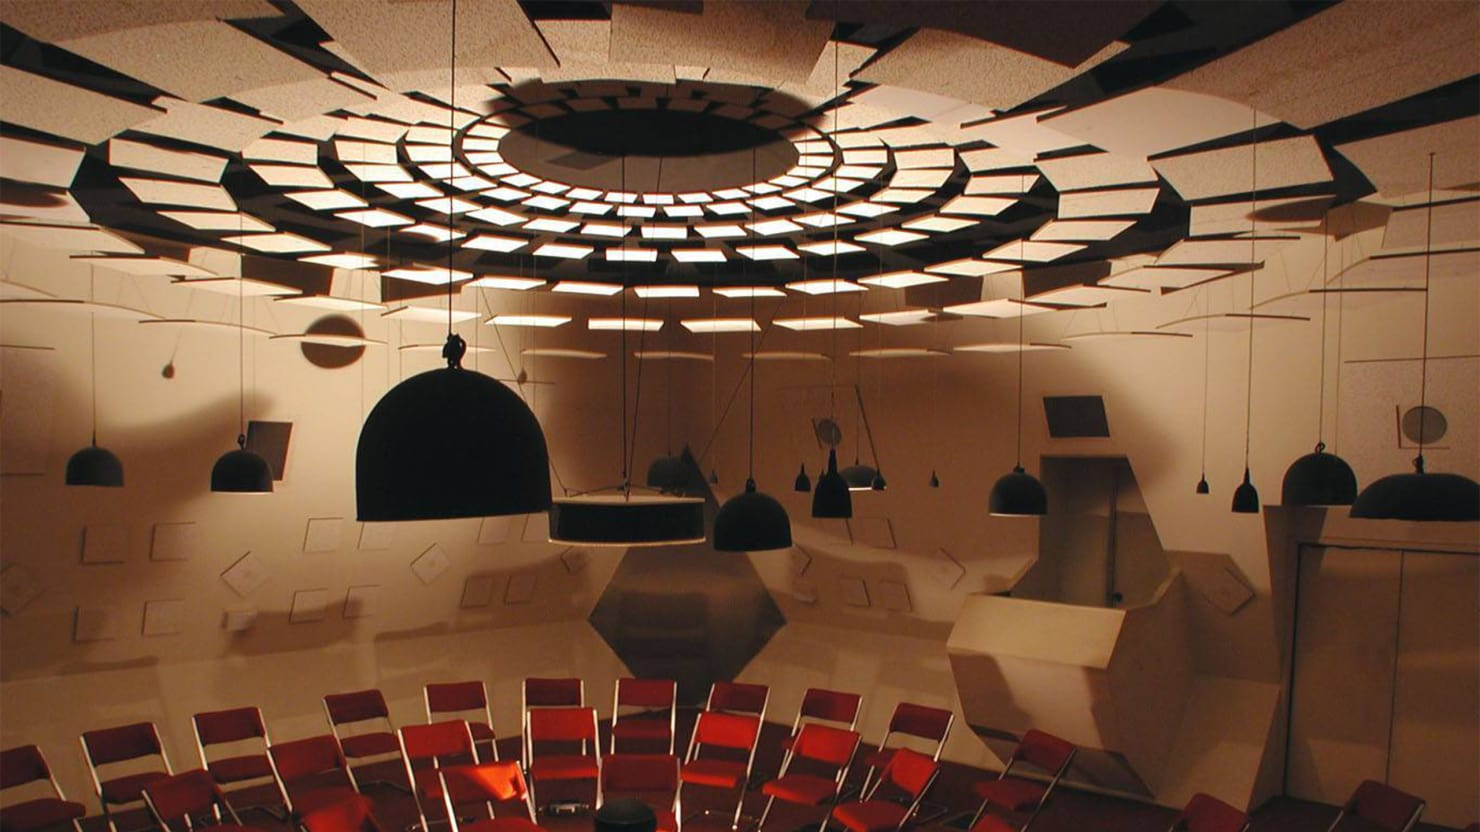 Maiden Lane San Francisco, Step Inside Audium, San Francisco's Trippy Music Sculpture